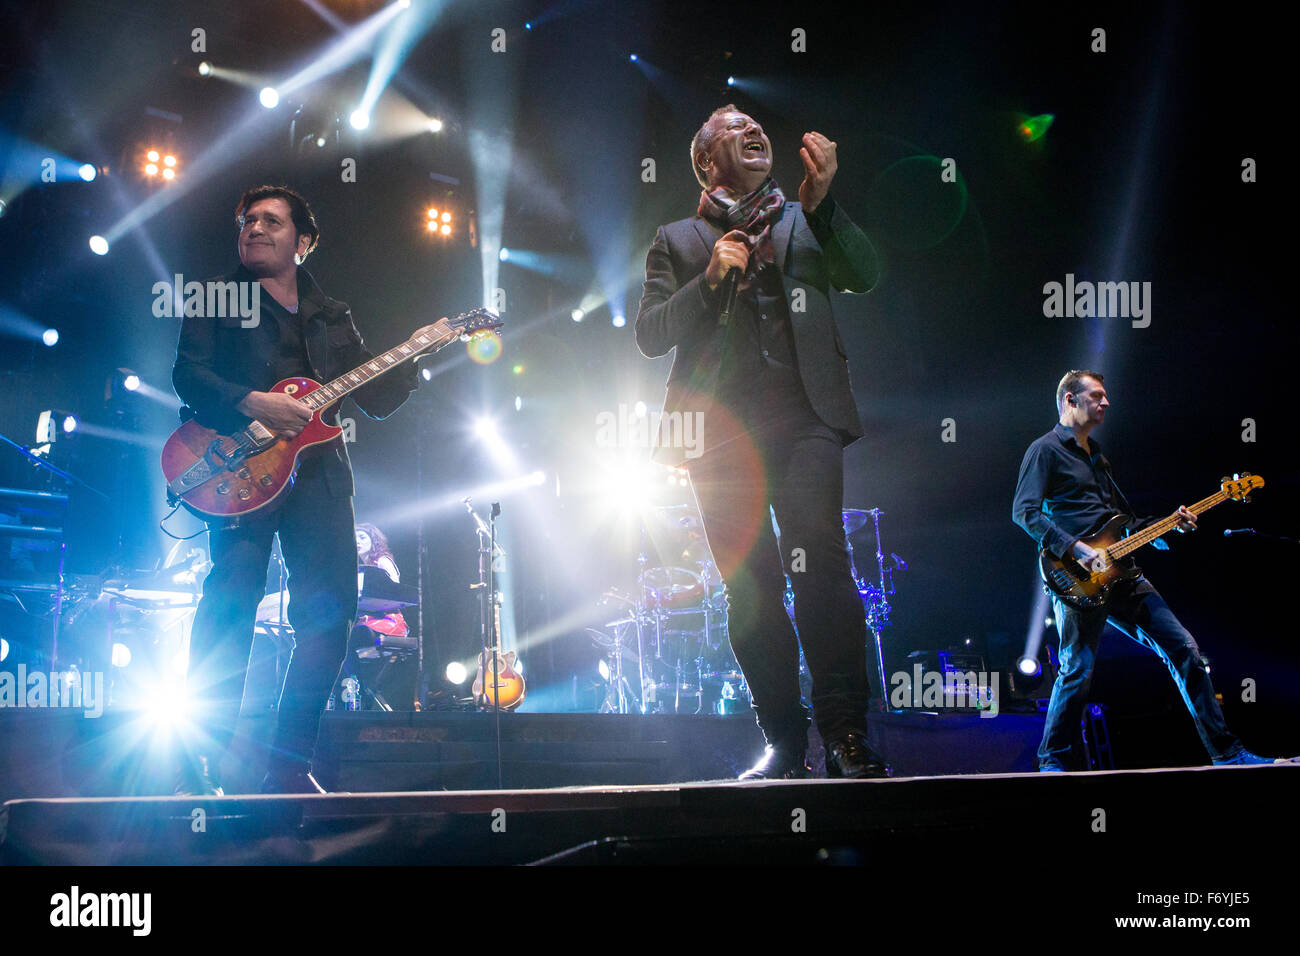 Milan, Italy. 21st November, 2015. The Scottish rock band SIMPLE MINDS performs live on stage at Mediolanum Forum - Stock Image